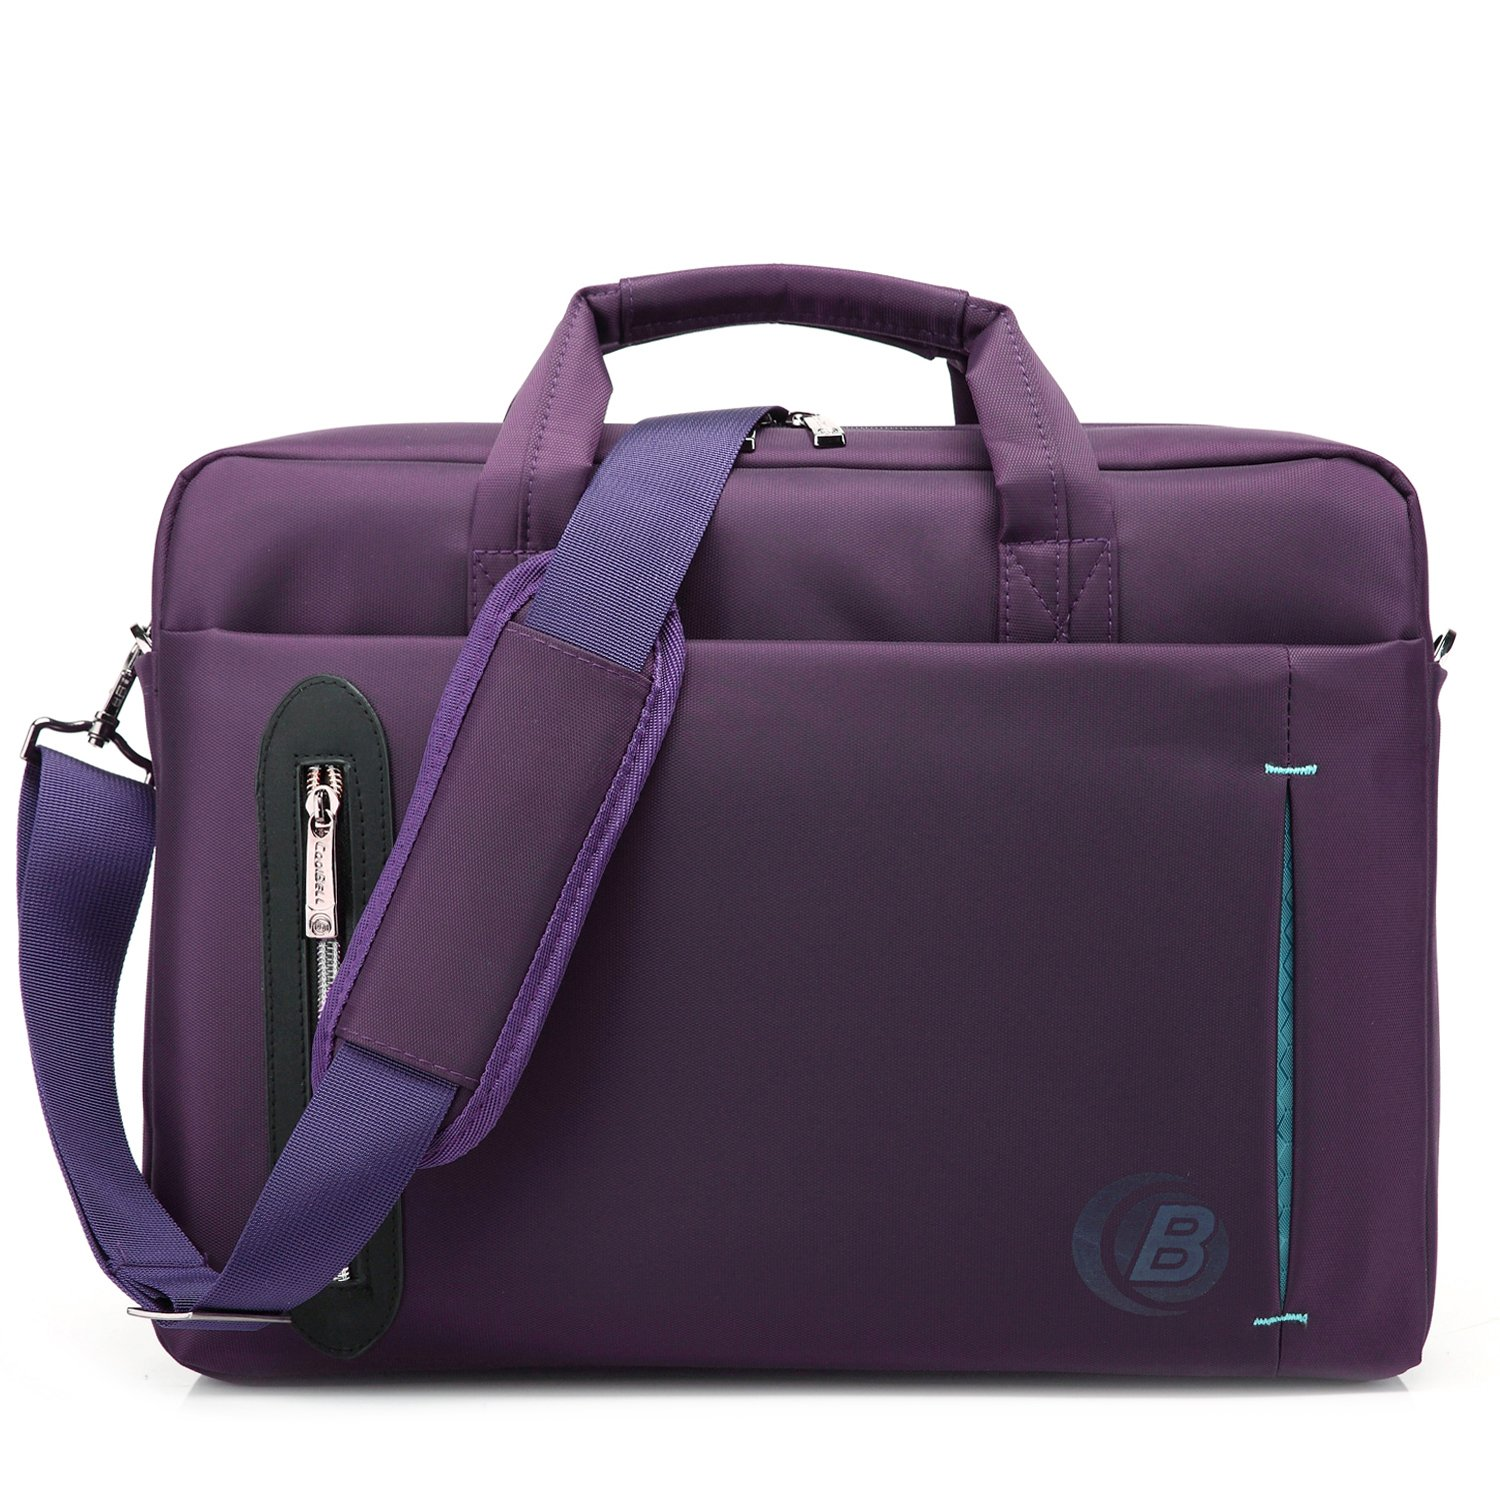 CoolBELL 17.3 inch Laptop Bag Messenger Bag Hand Bag Multi-Compartment Briefcase Waterproof Nylon Shoulder Bag for Laptop/Ultrabook / HP/MacBook / Asus/Lenovo / Men/Women/Business (Purple)